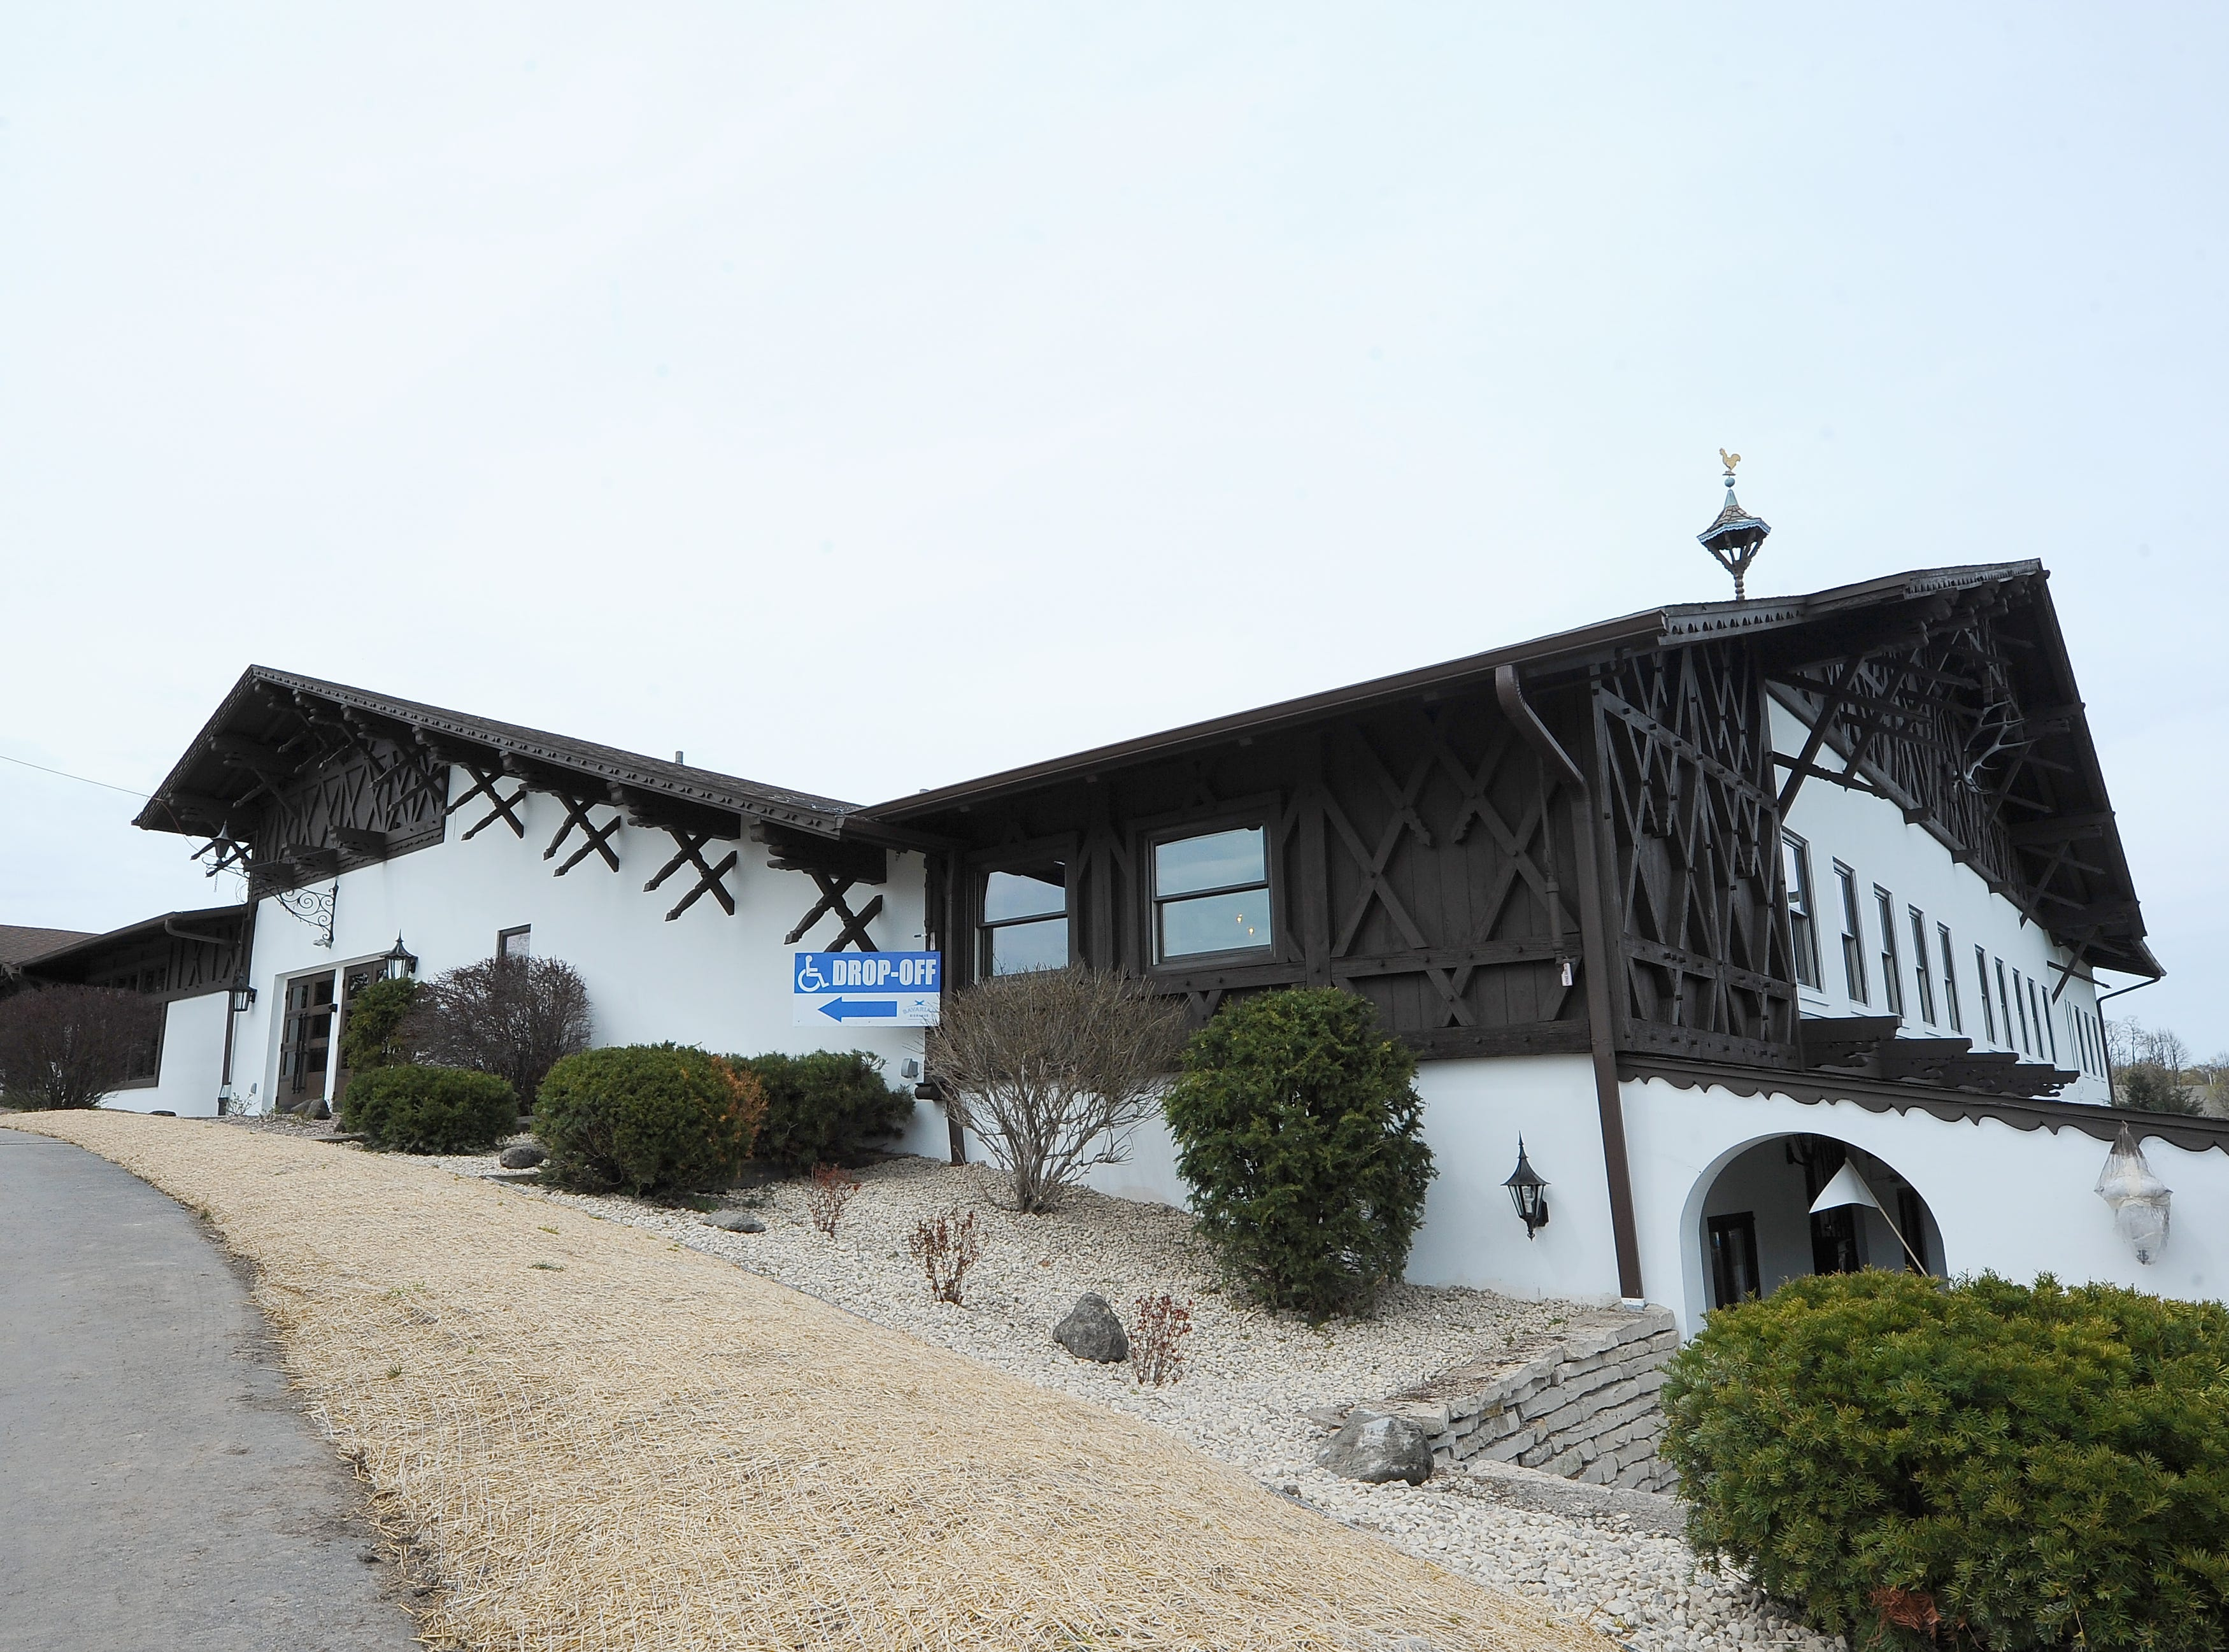 The Bavarian Bierhaus reopened in 2016 after the former Bavarian Inn was closed in 2011.